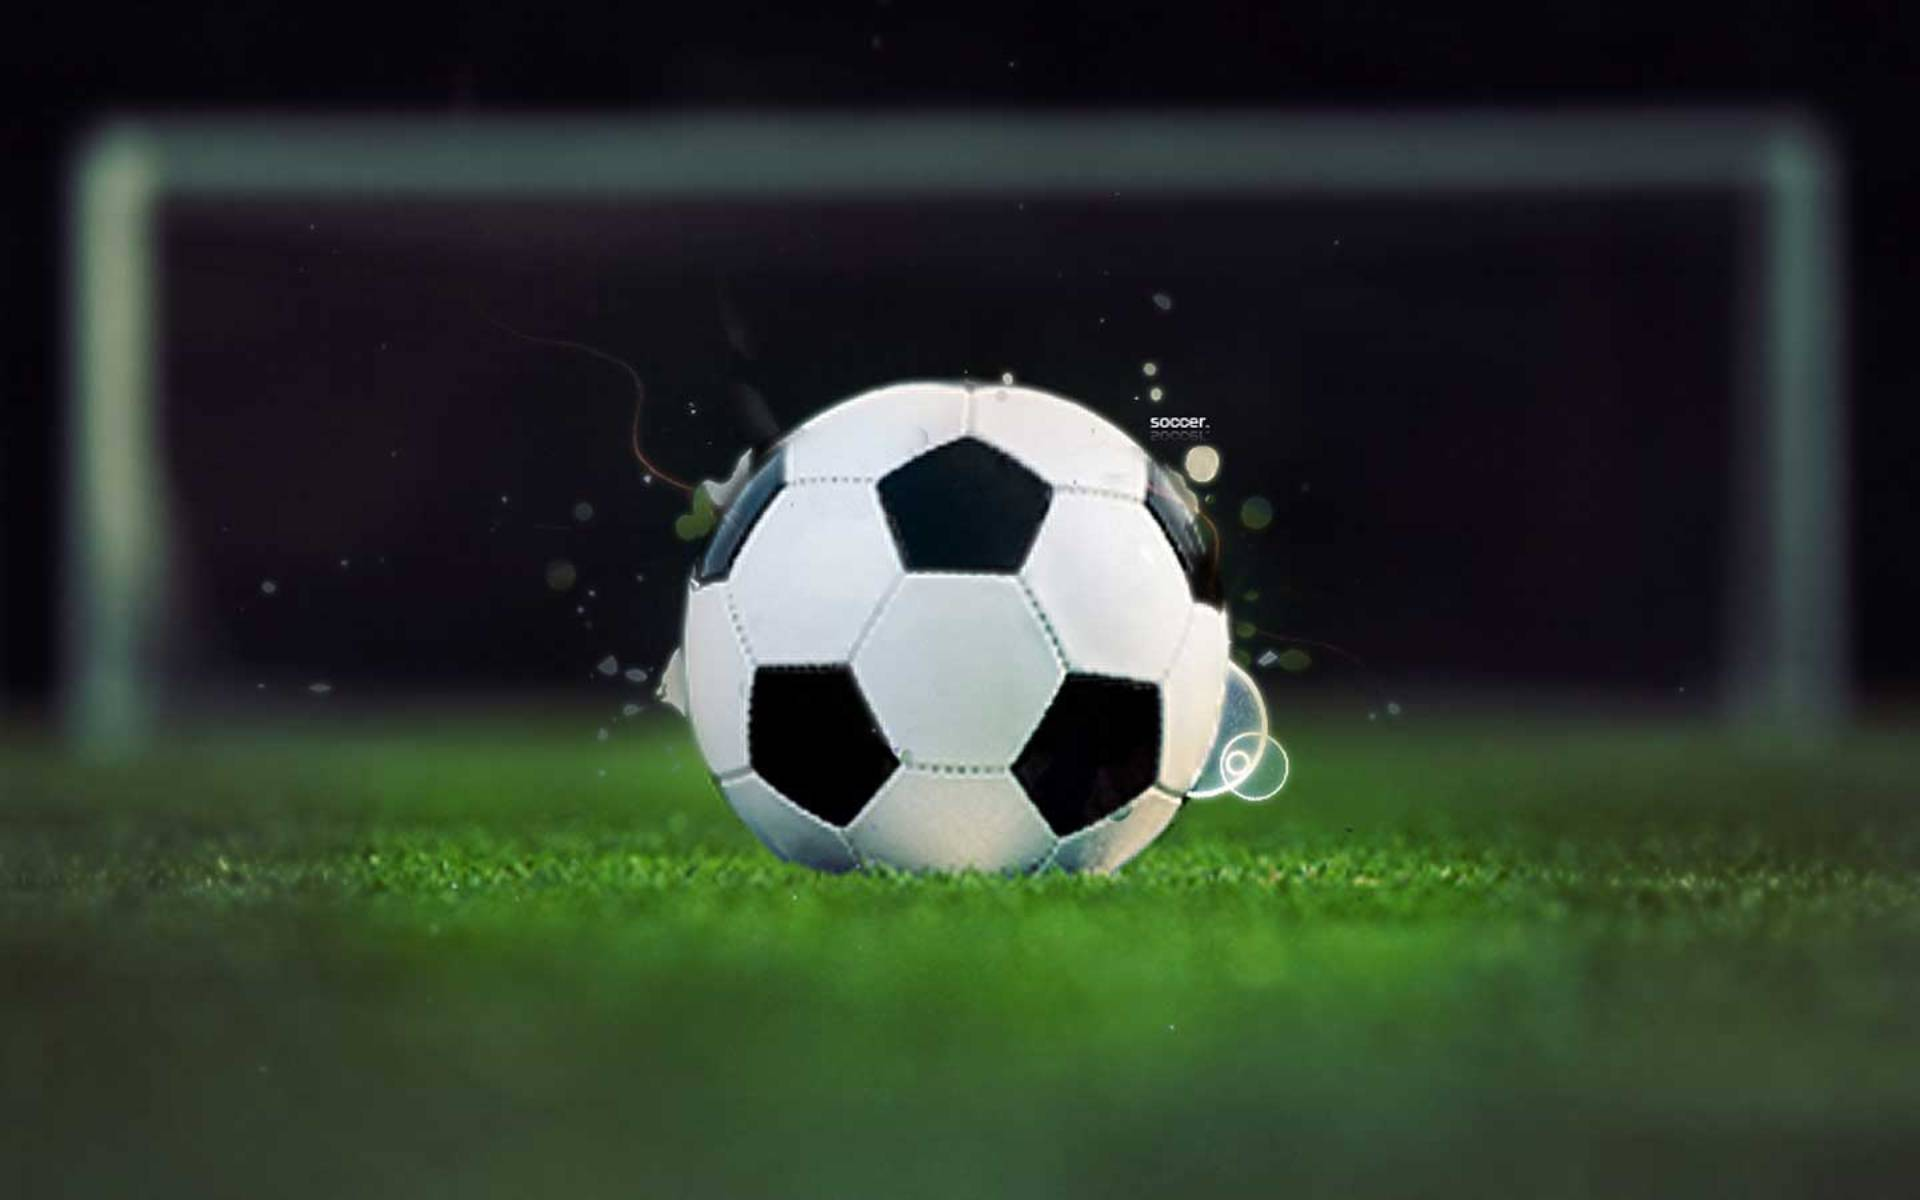 Soccer Desktop Backgrounds - Wallpaper Cave Soccer Backgrounds For Photography